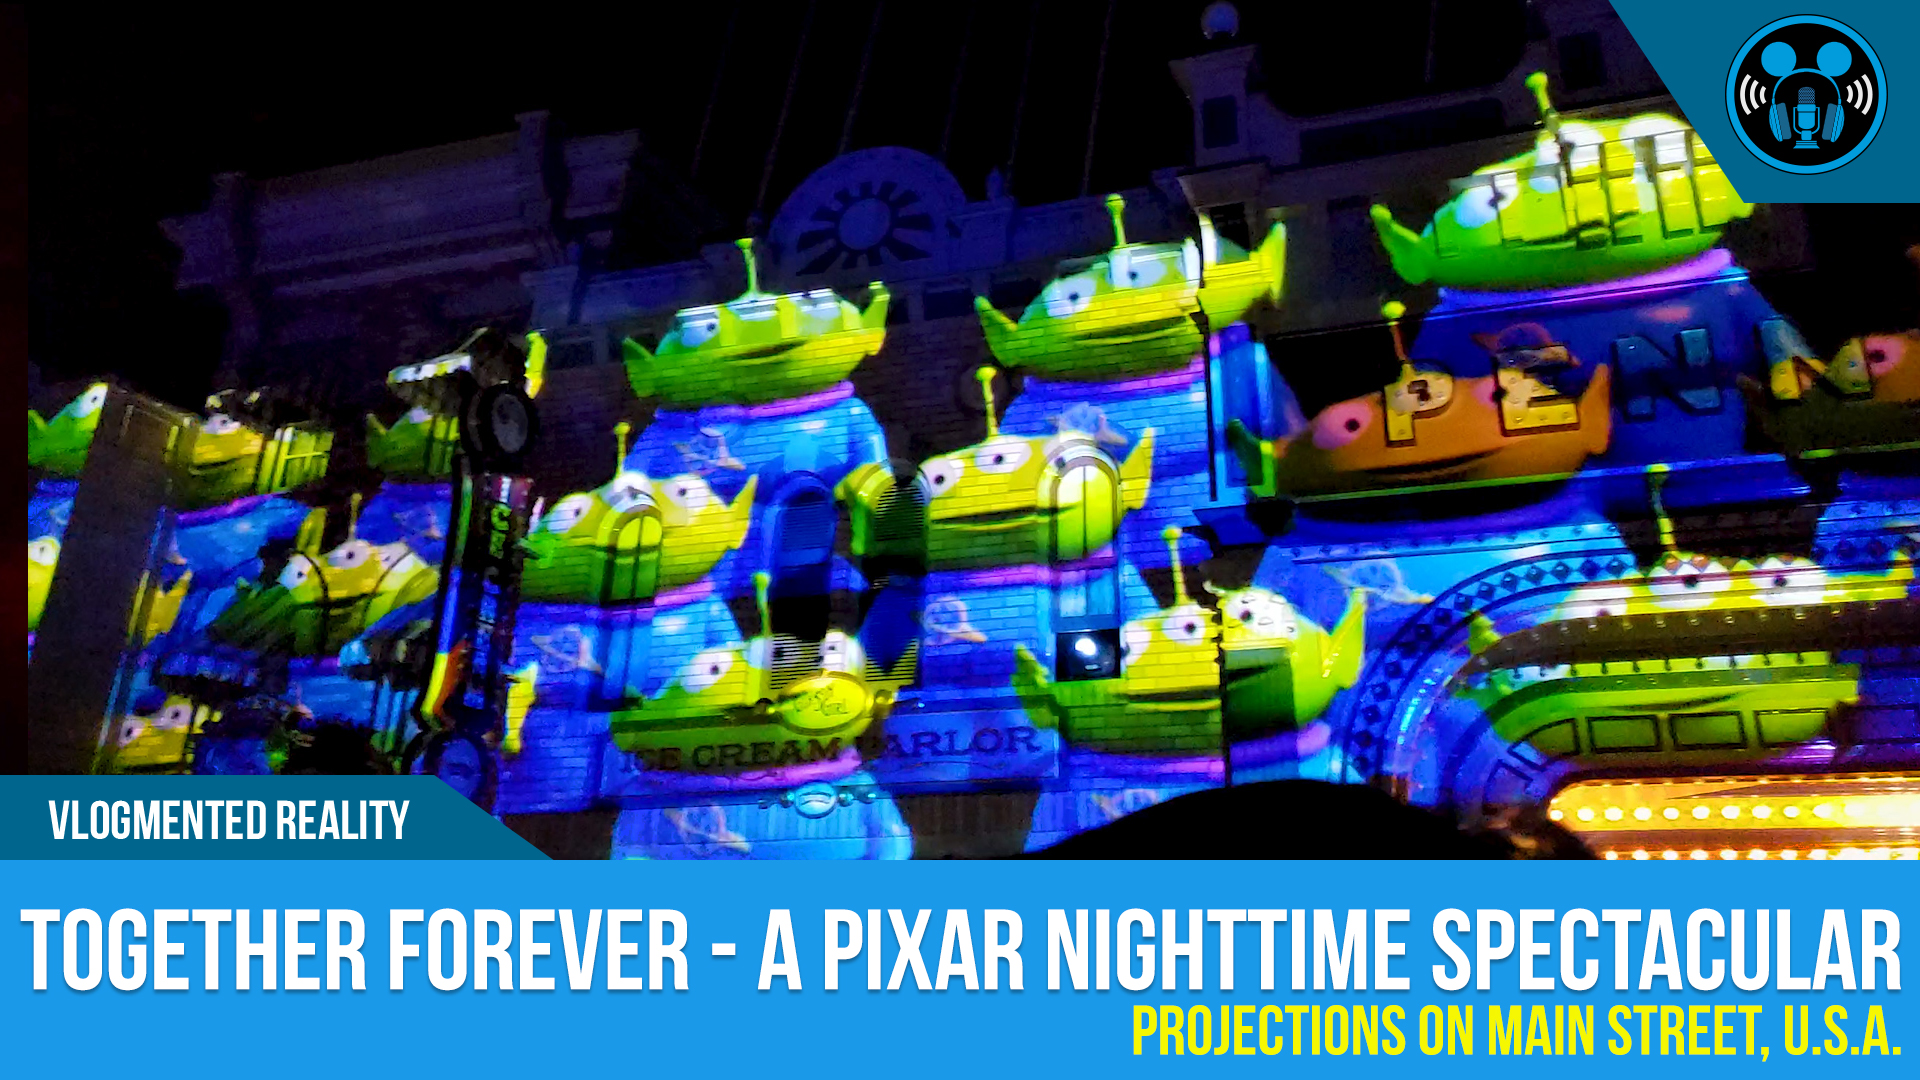 VLOG: DISNEYLAND TOGETHER FOREVER – A Pixar Nighttime Spectacular (Main Street Projections)